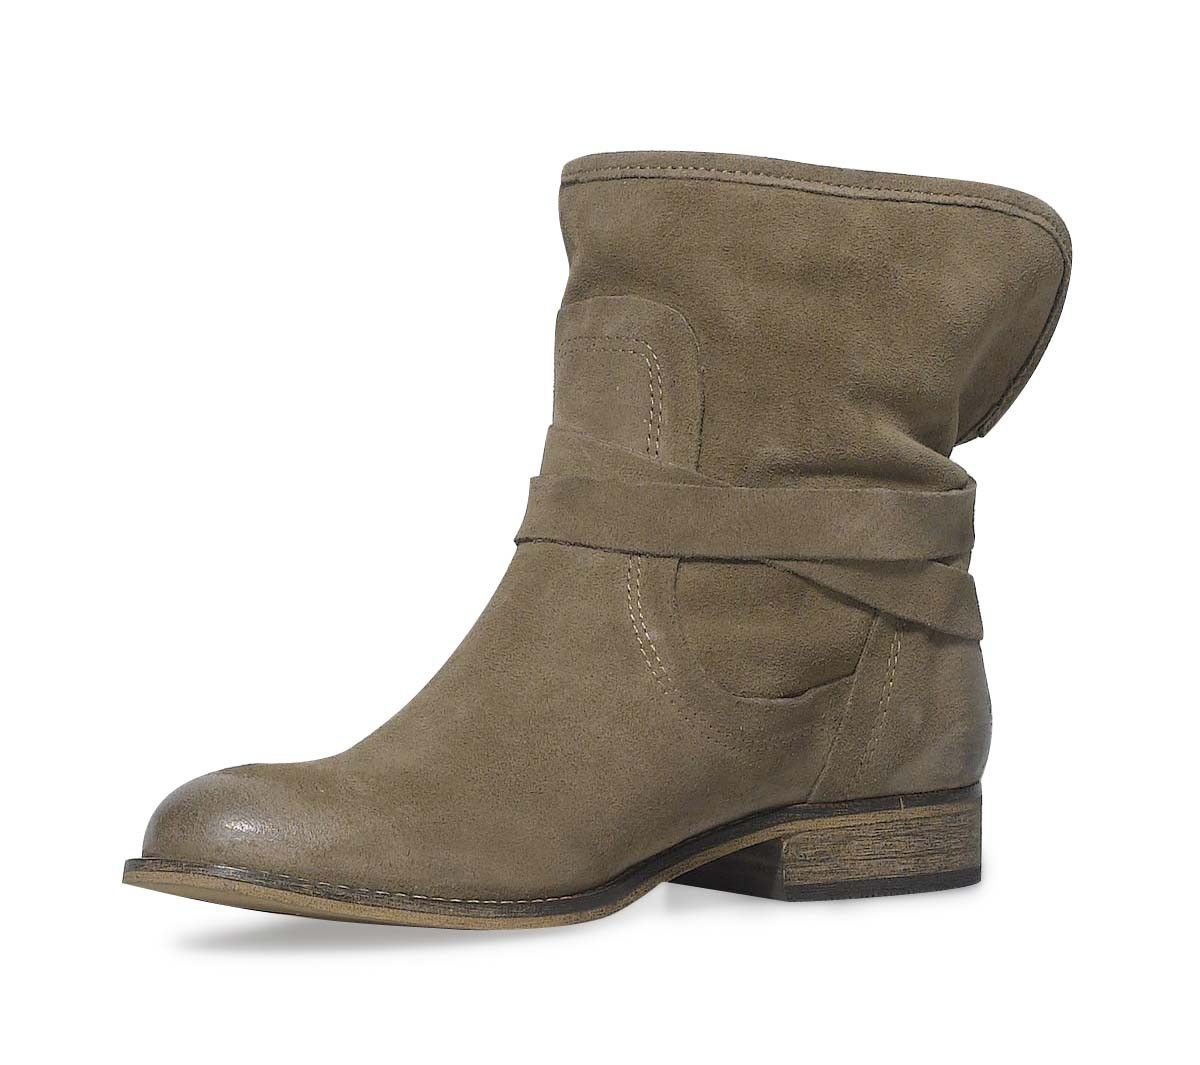 CHEVILLE CUIR HIVER BOTTES CHAUSSURES WOMENS MESDAMES